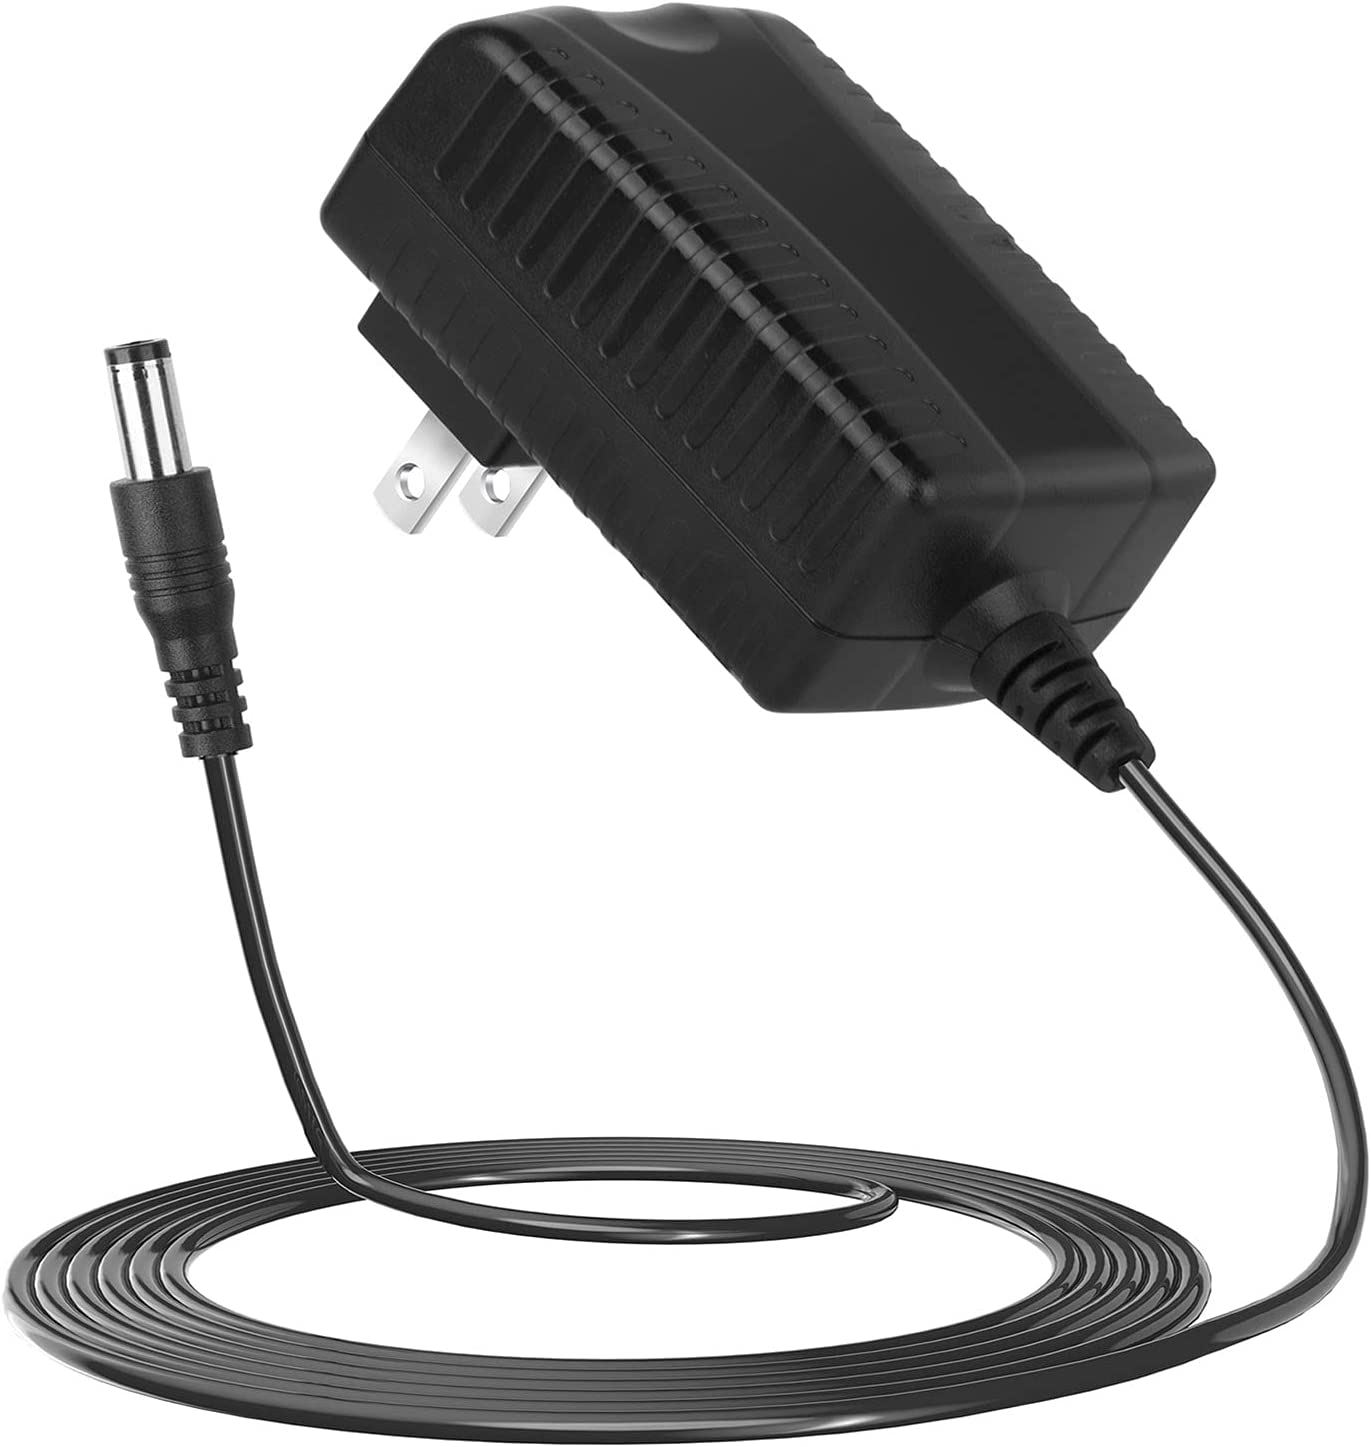 Power Cord for Logitech Squeezebox Wi-Fi Internet Radio 930-000097 534-000245 X-R0001 830-000080 AC/DC Adapter Charger Supply